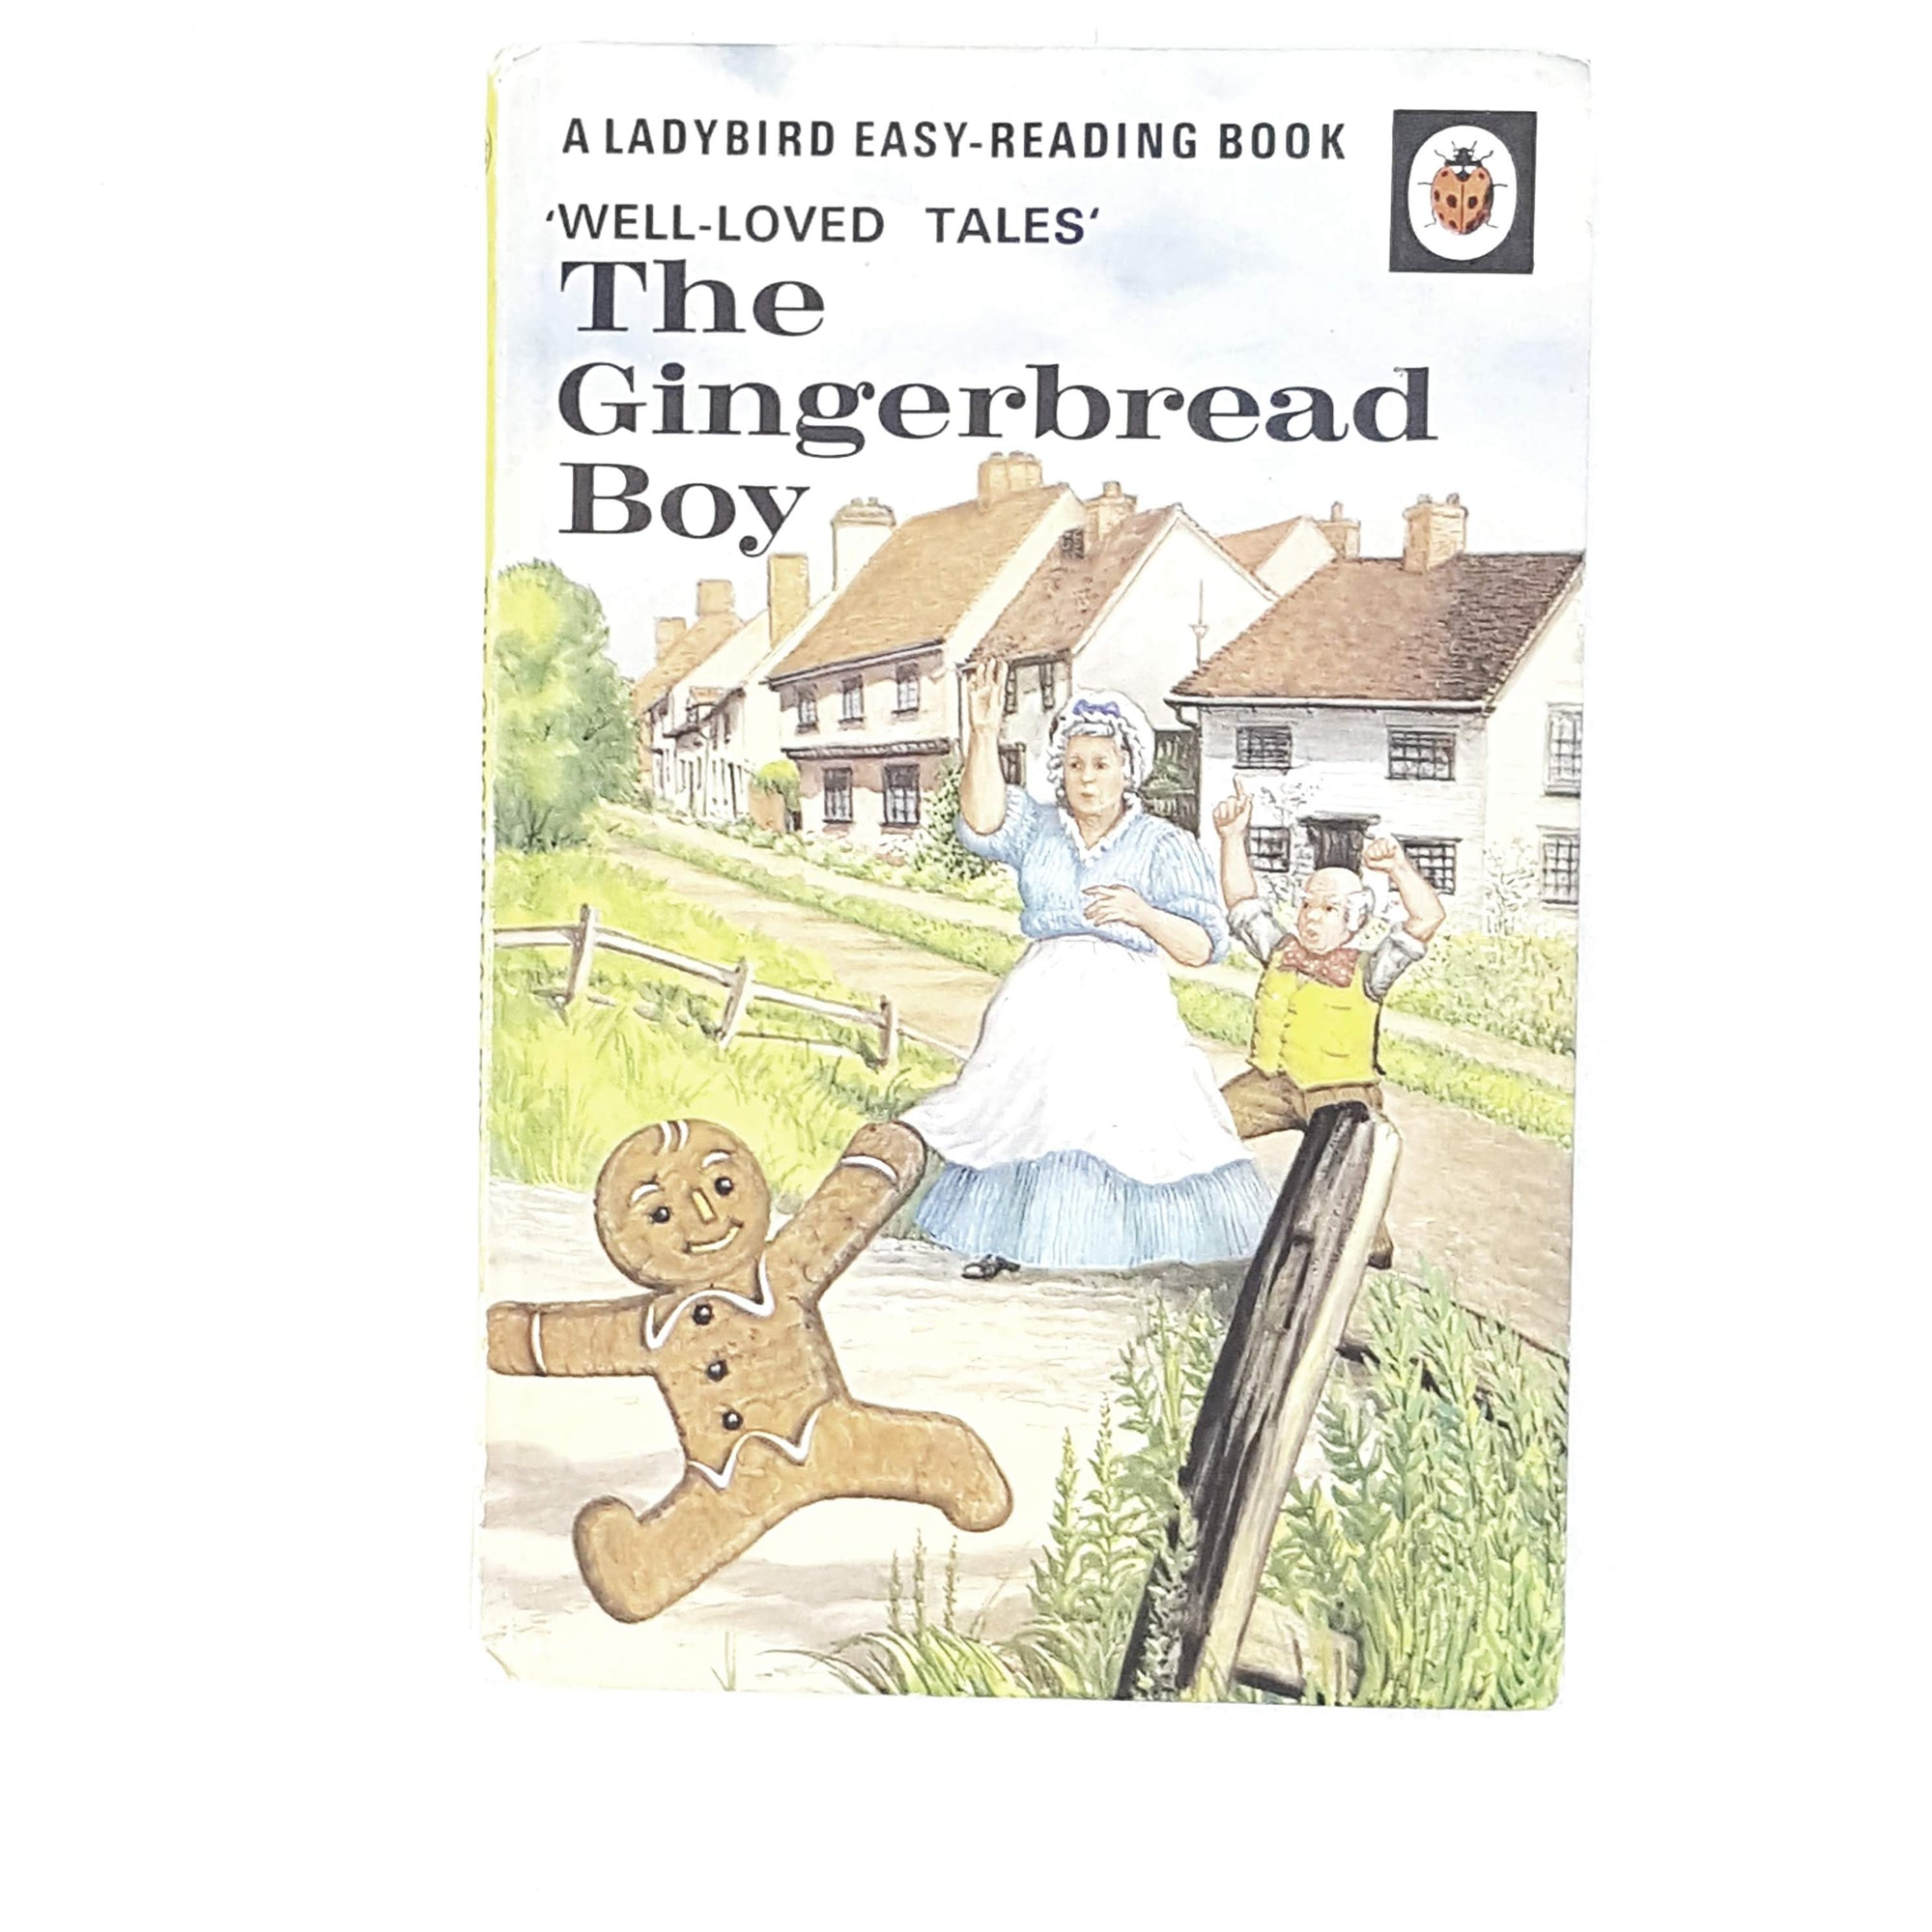 Vintage Ladybird: The Gingerbread Boy 1966